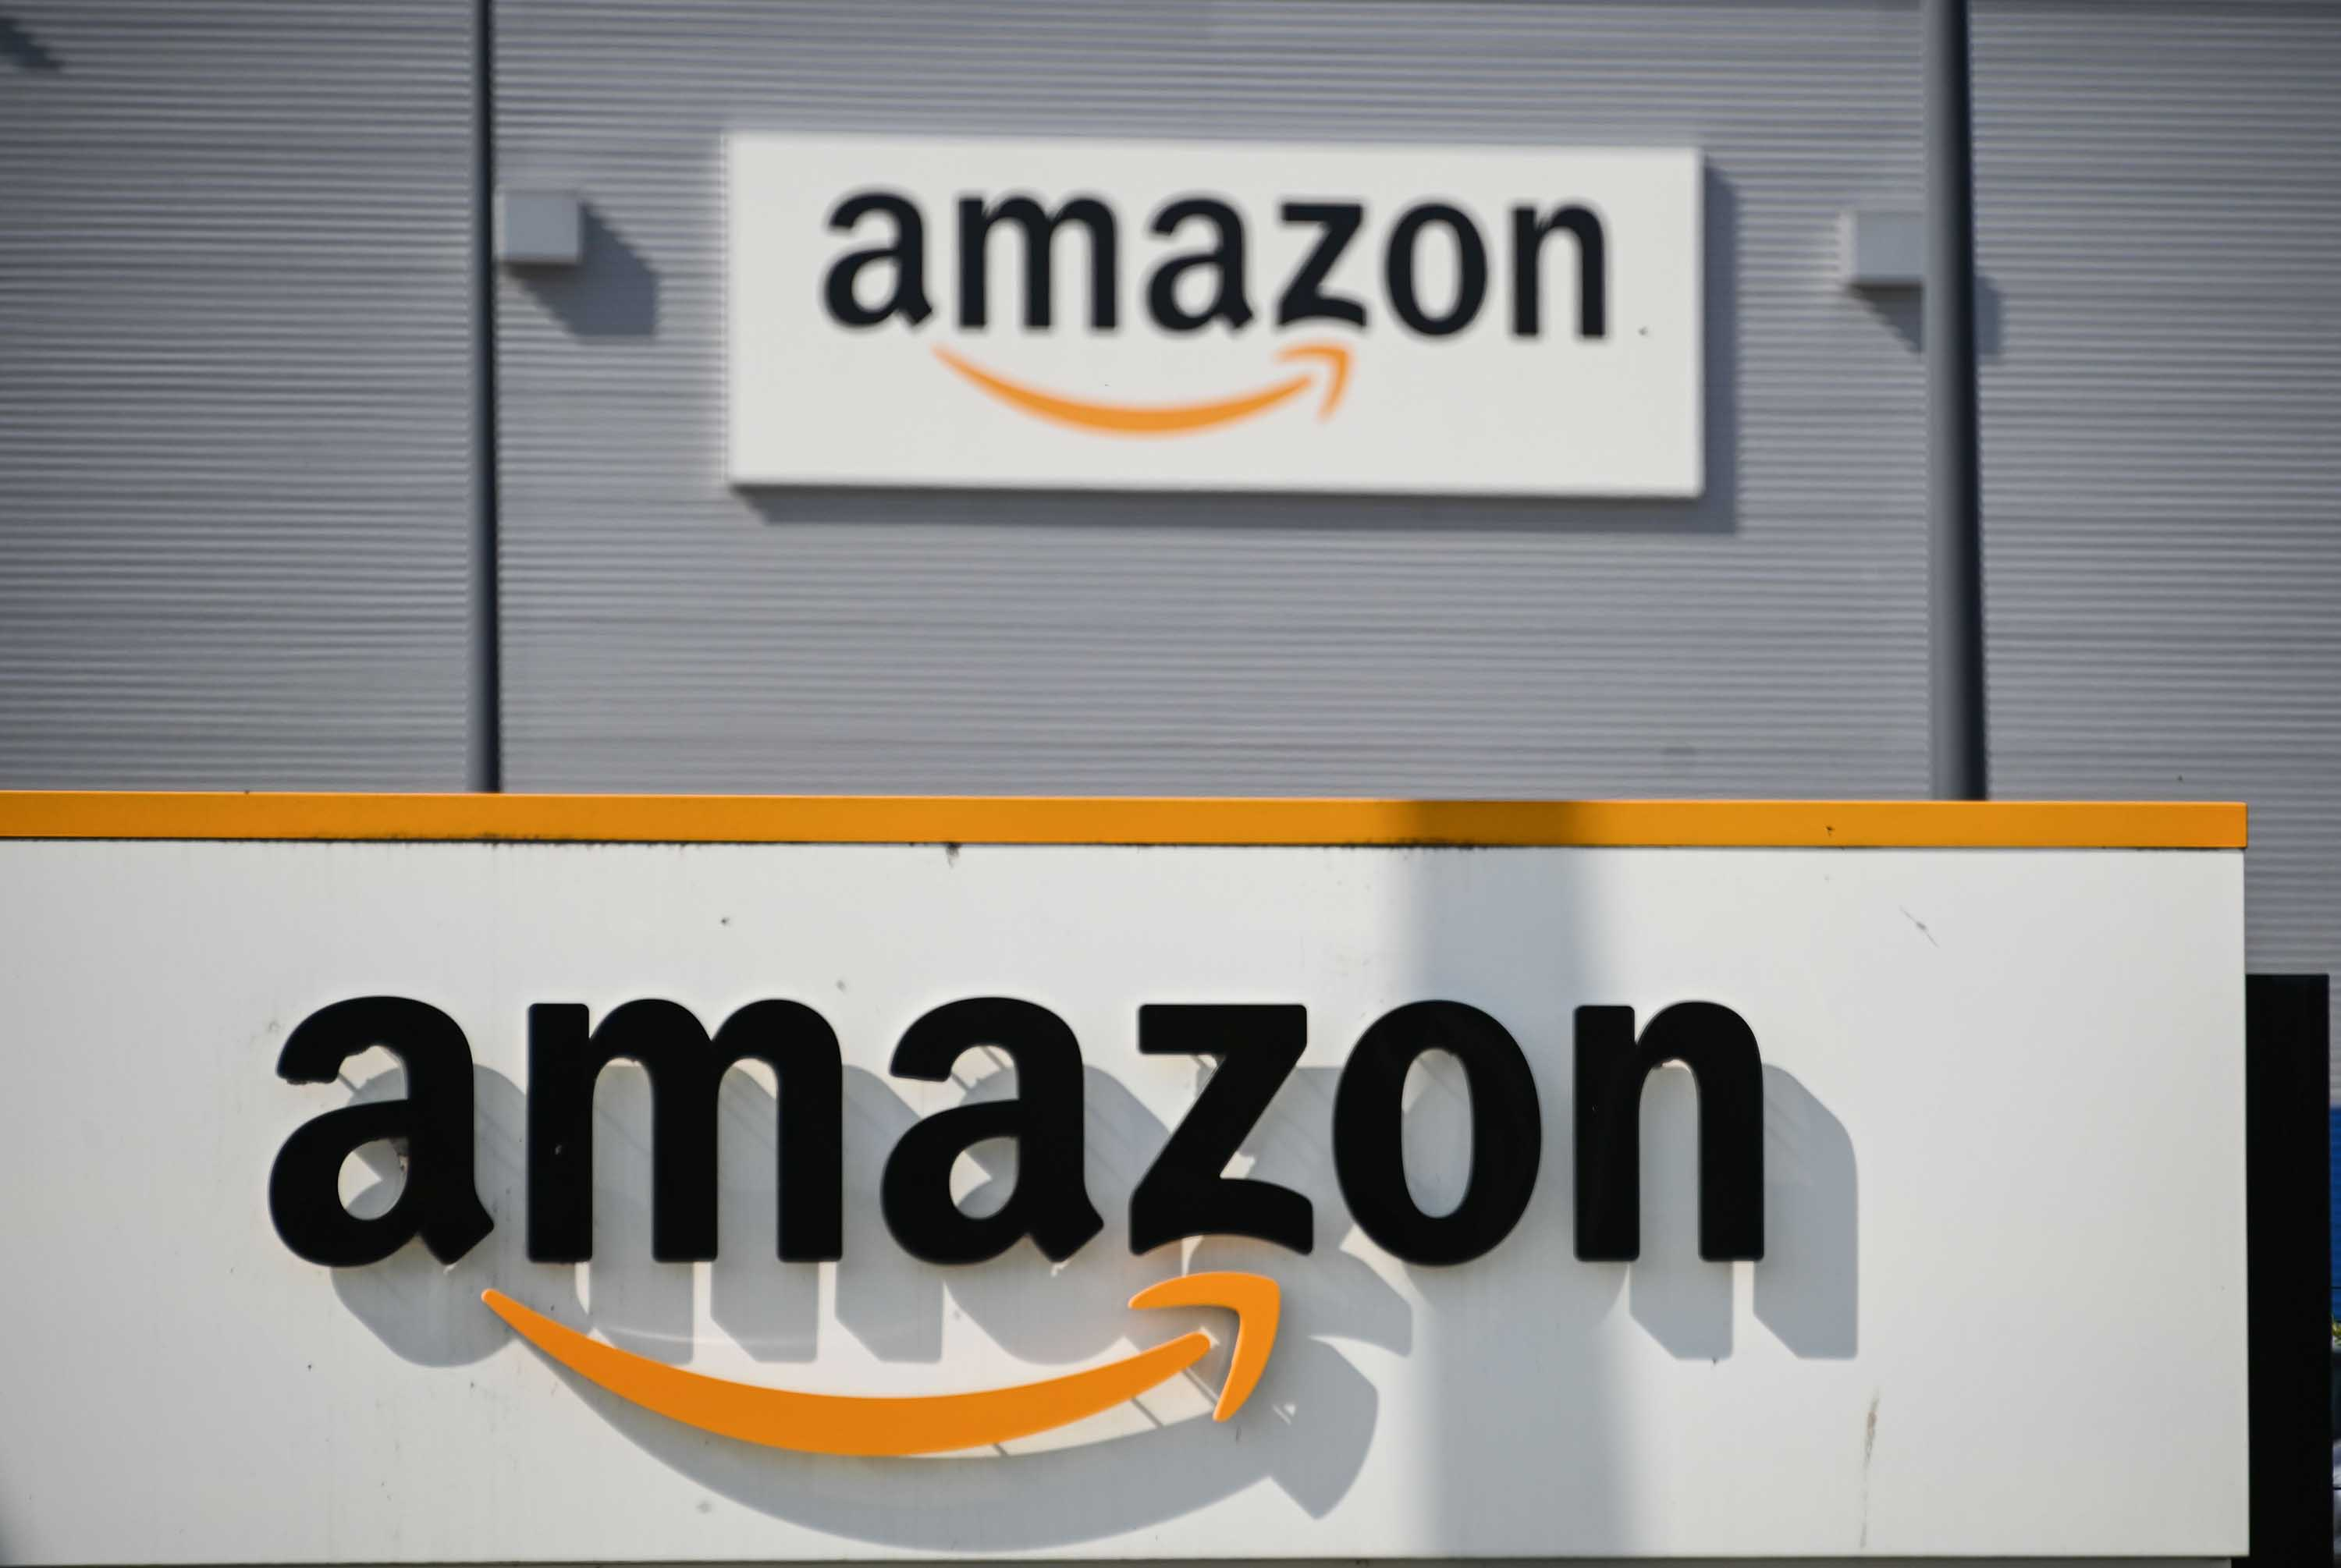 An Amazon logistics center is pictured in Lauwin-Planque, northern France, on April 16.